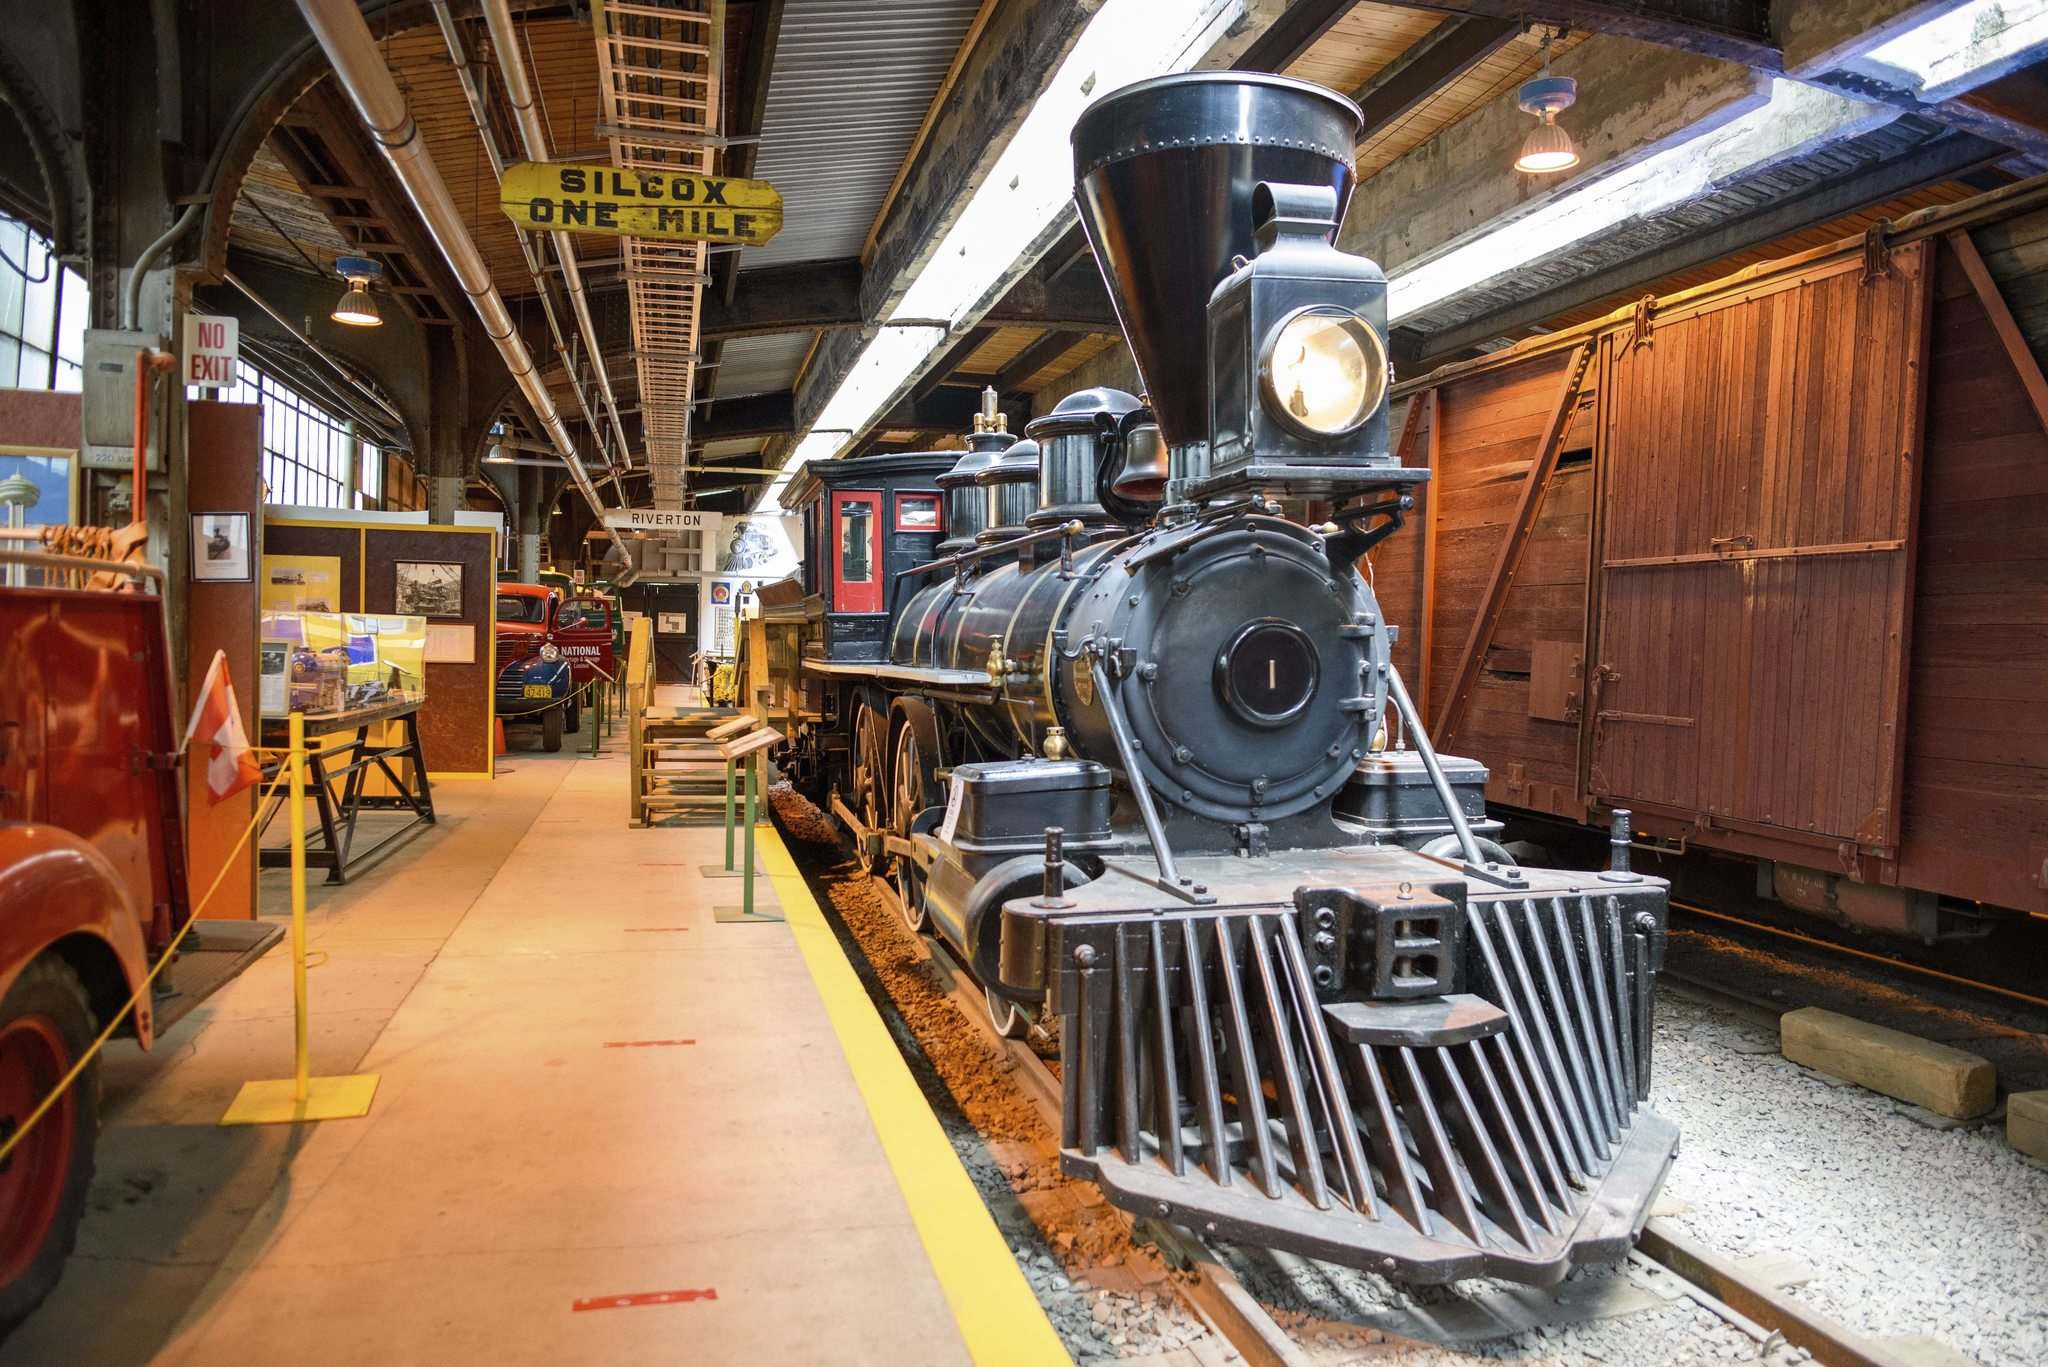 Visitors must wear masks to enter the Winnipeg Railway Museum, located at Union Station. (Jesse Boily / Winnipeg Free Press)